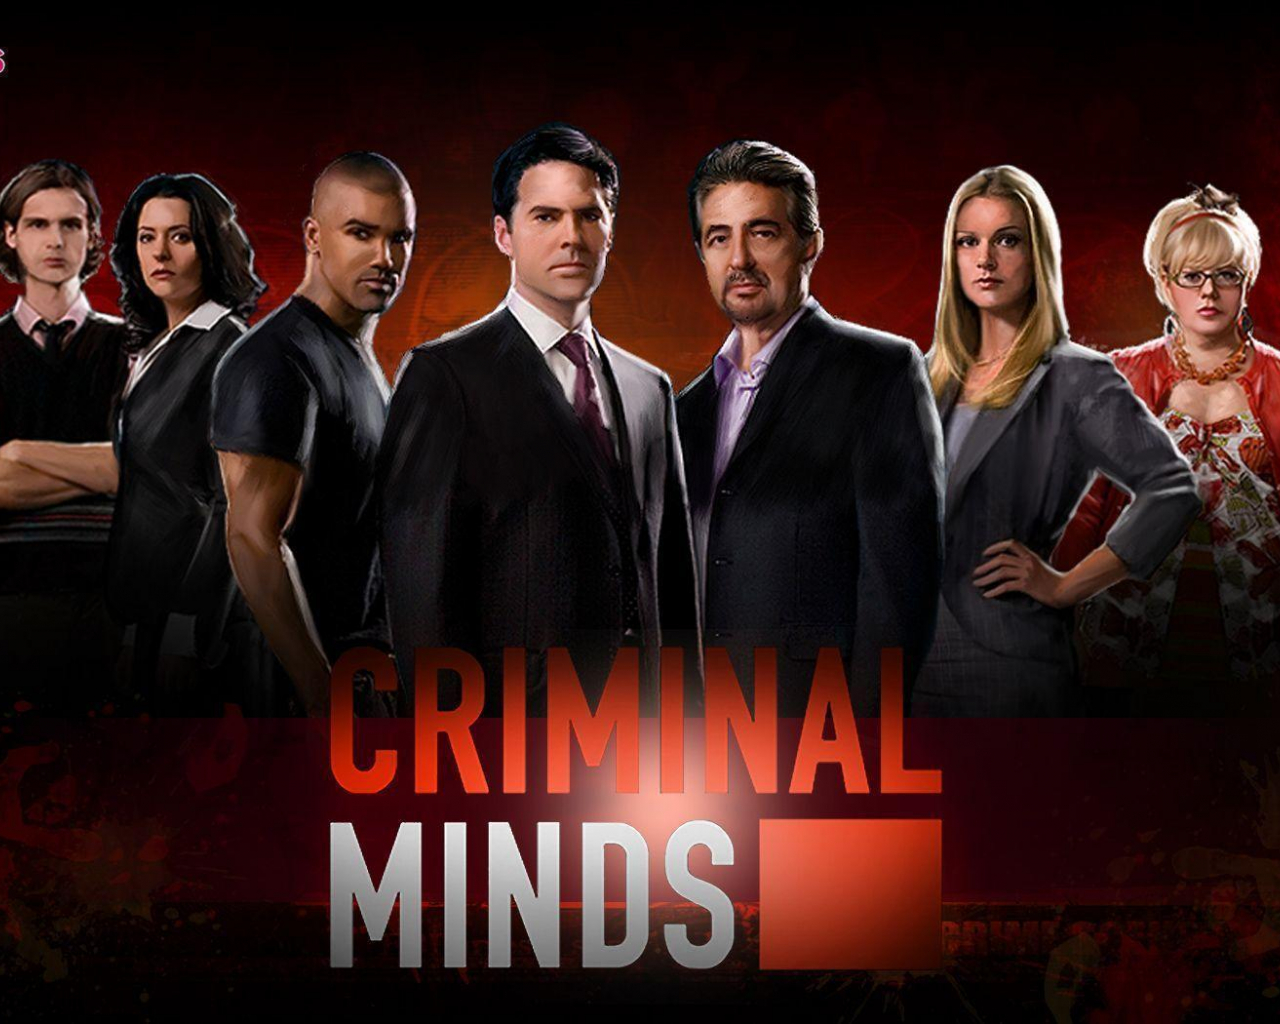 Free download Criminal Minds Wallpapers [1680x1050] for ...